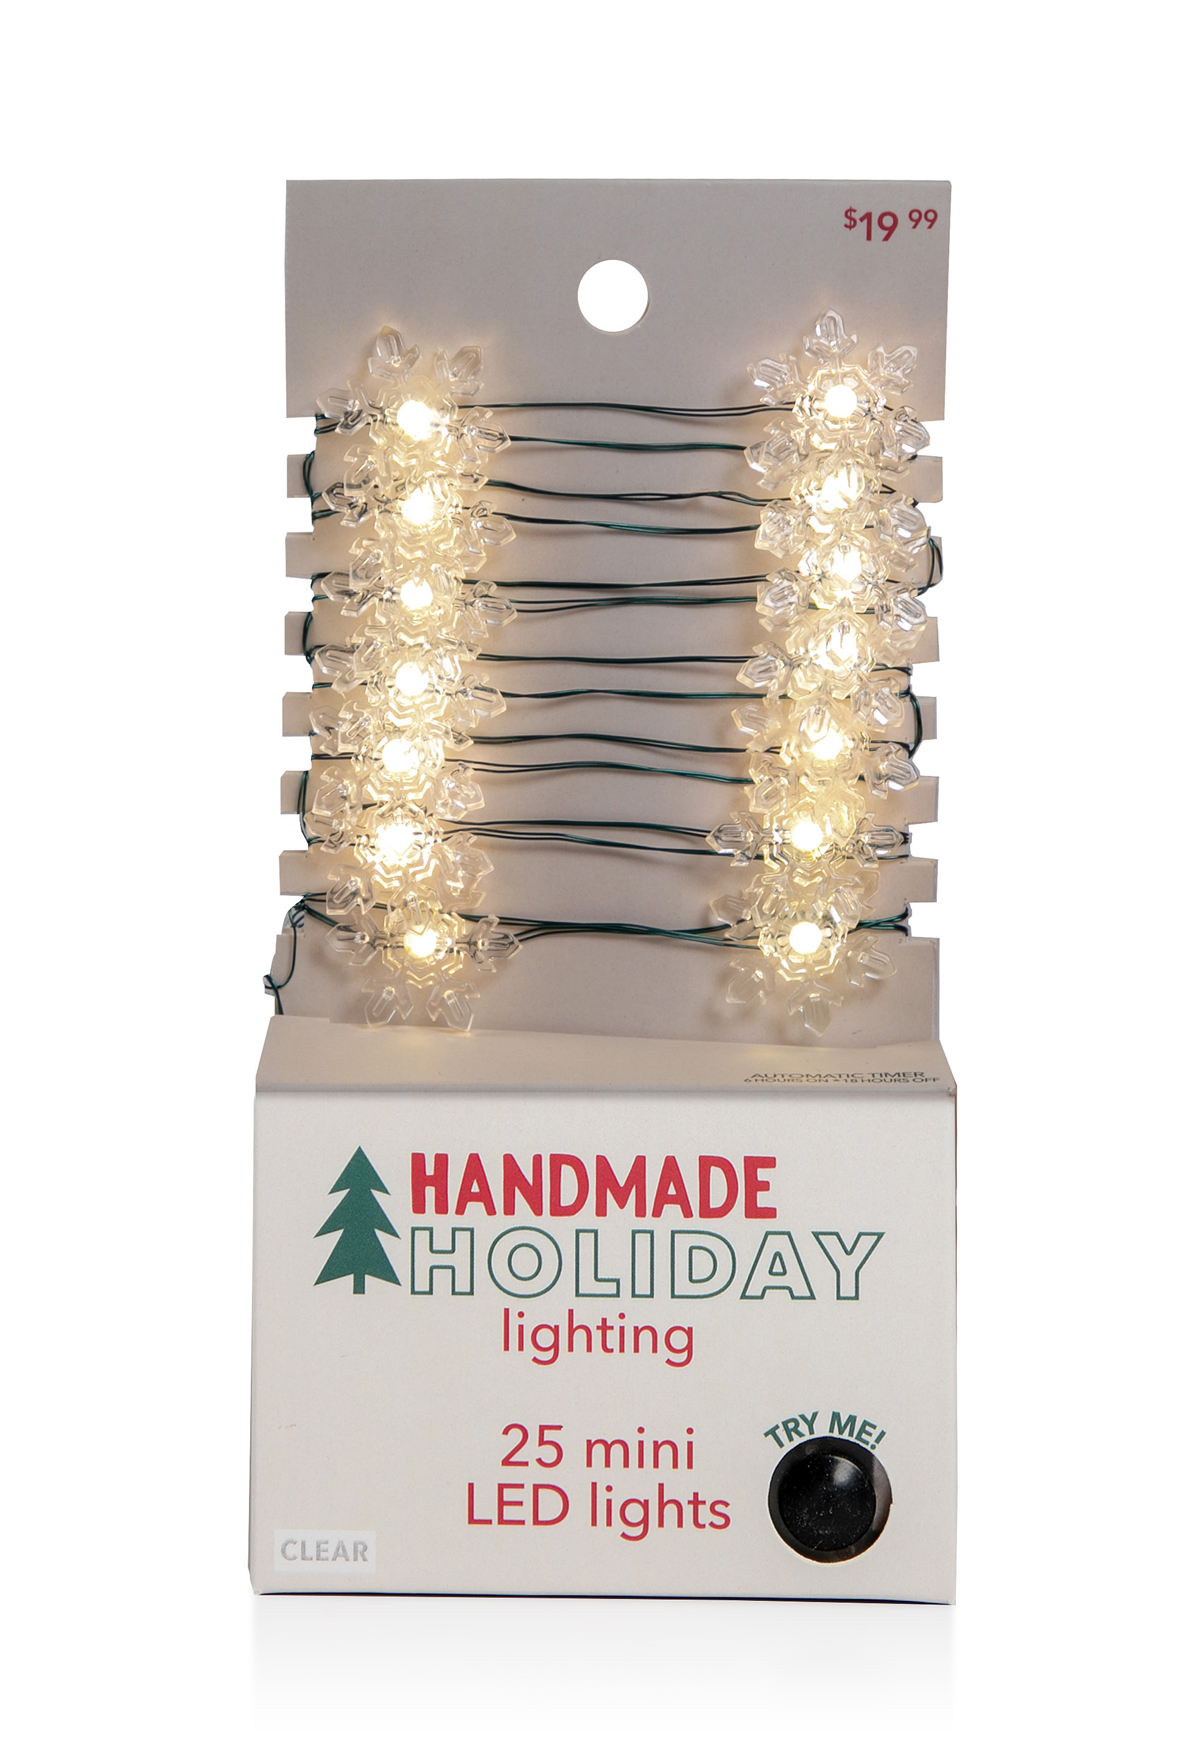 Handmade Holiday Lighting Christmas Snowflake LED Clear Light Strand